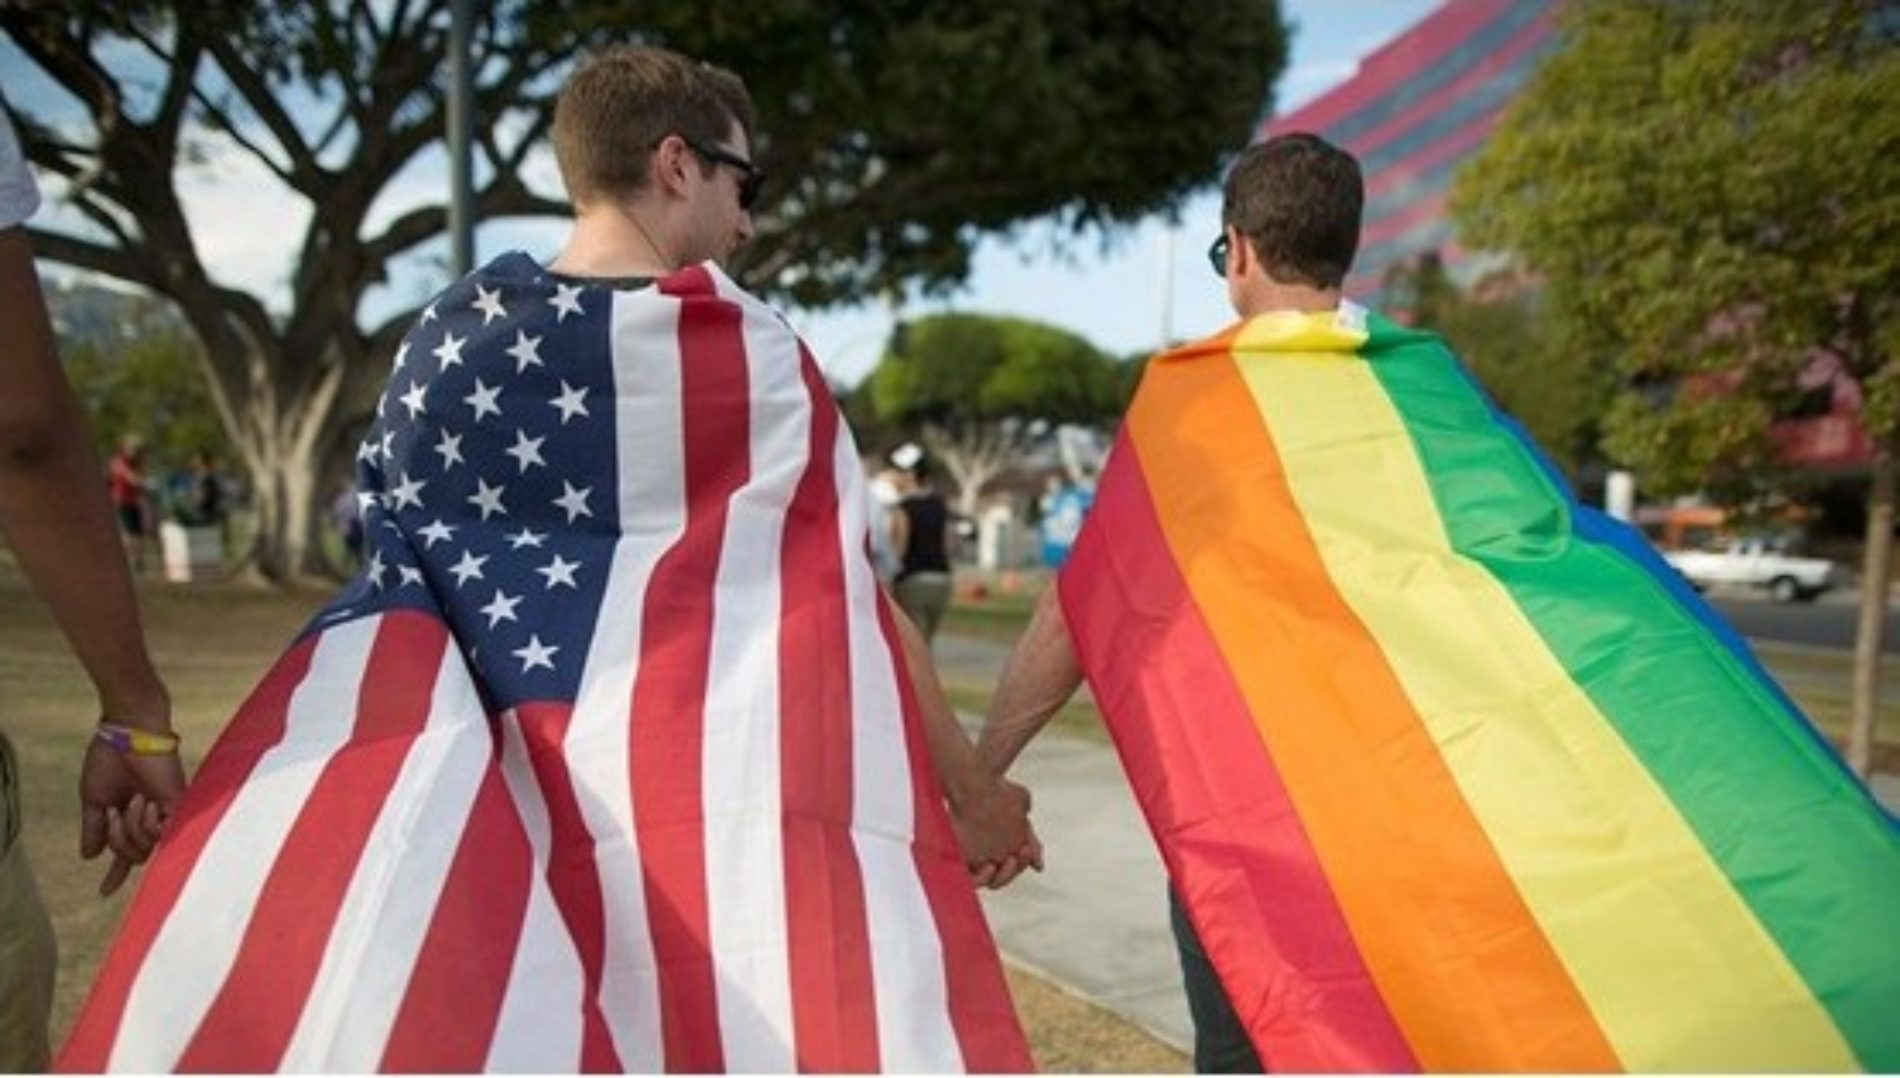 US Supreme Court Rejects California Gay-Conversion Therapy Ban Case